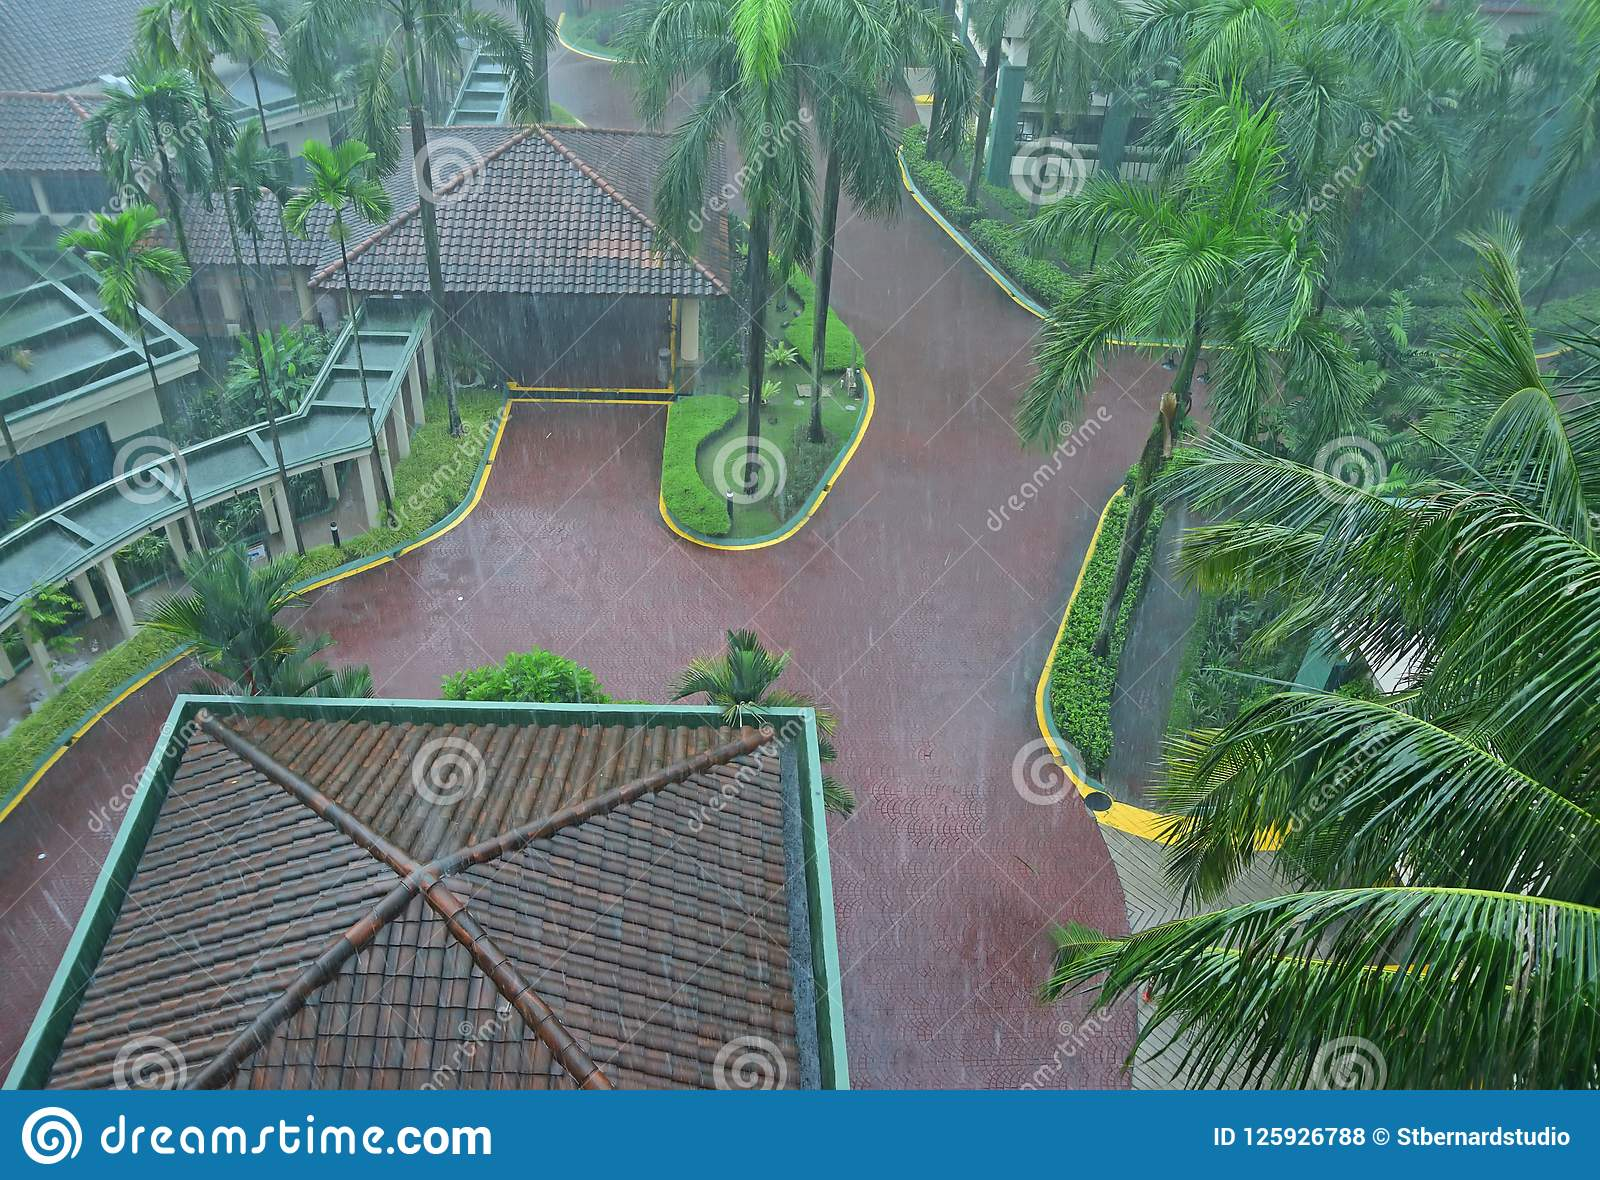 Common heavy downpour rain in tropical country in a beautiful resort with plenty of tall palm trees